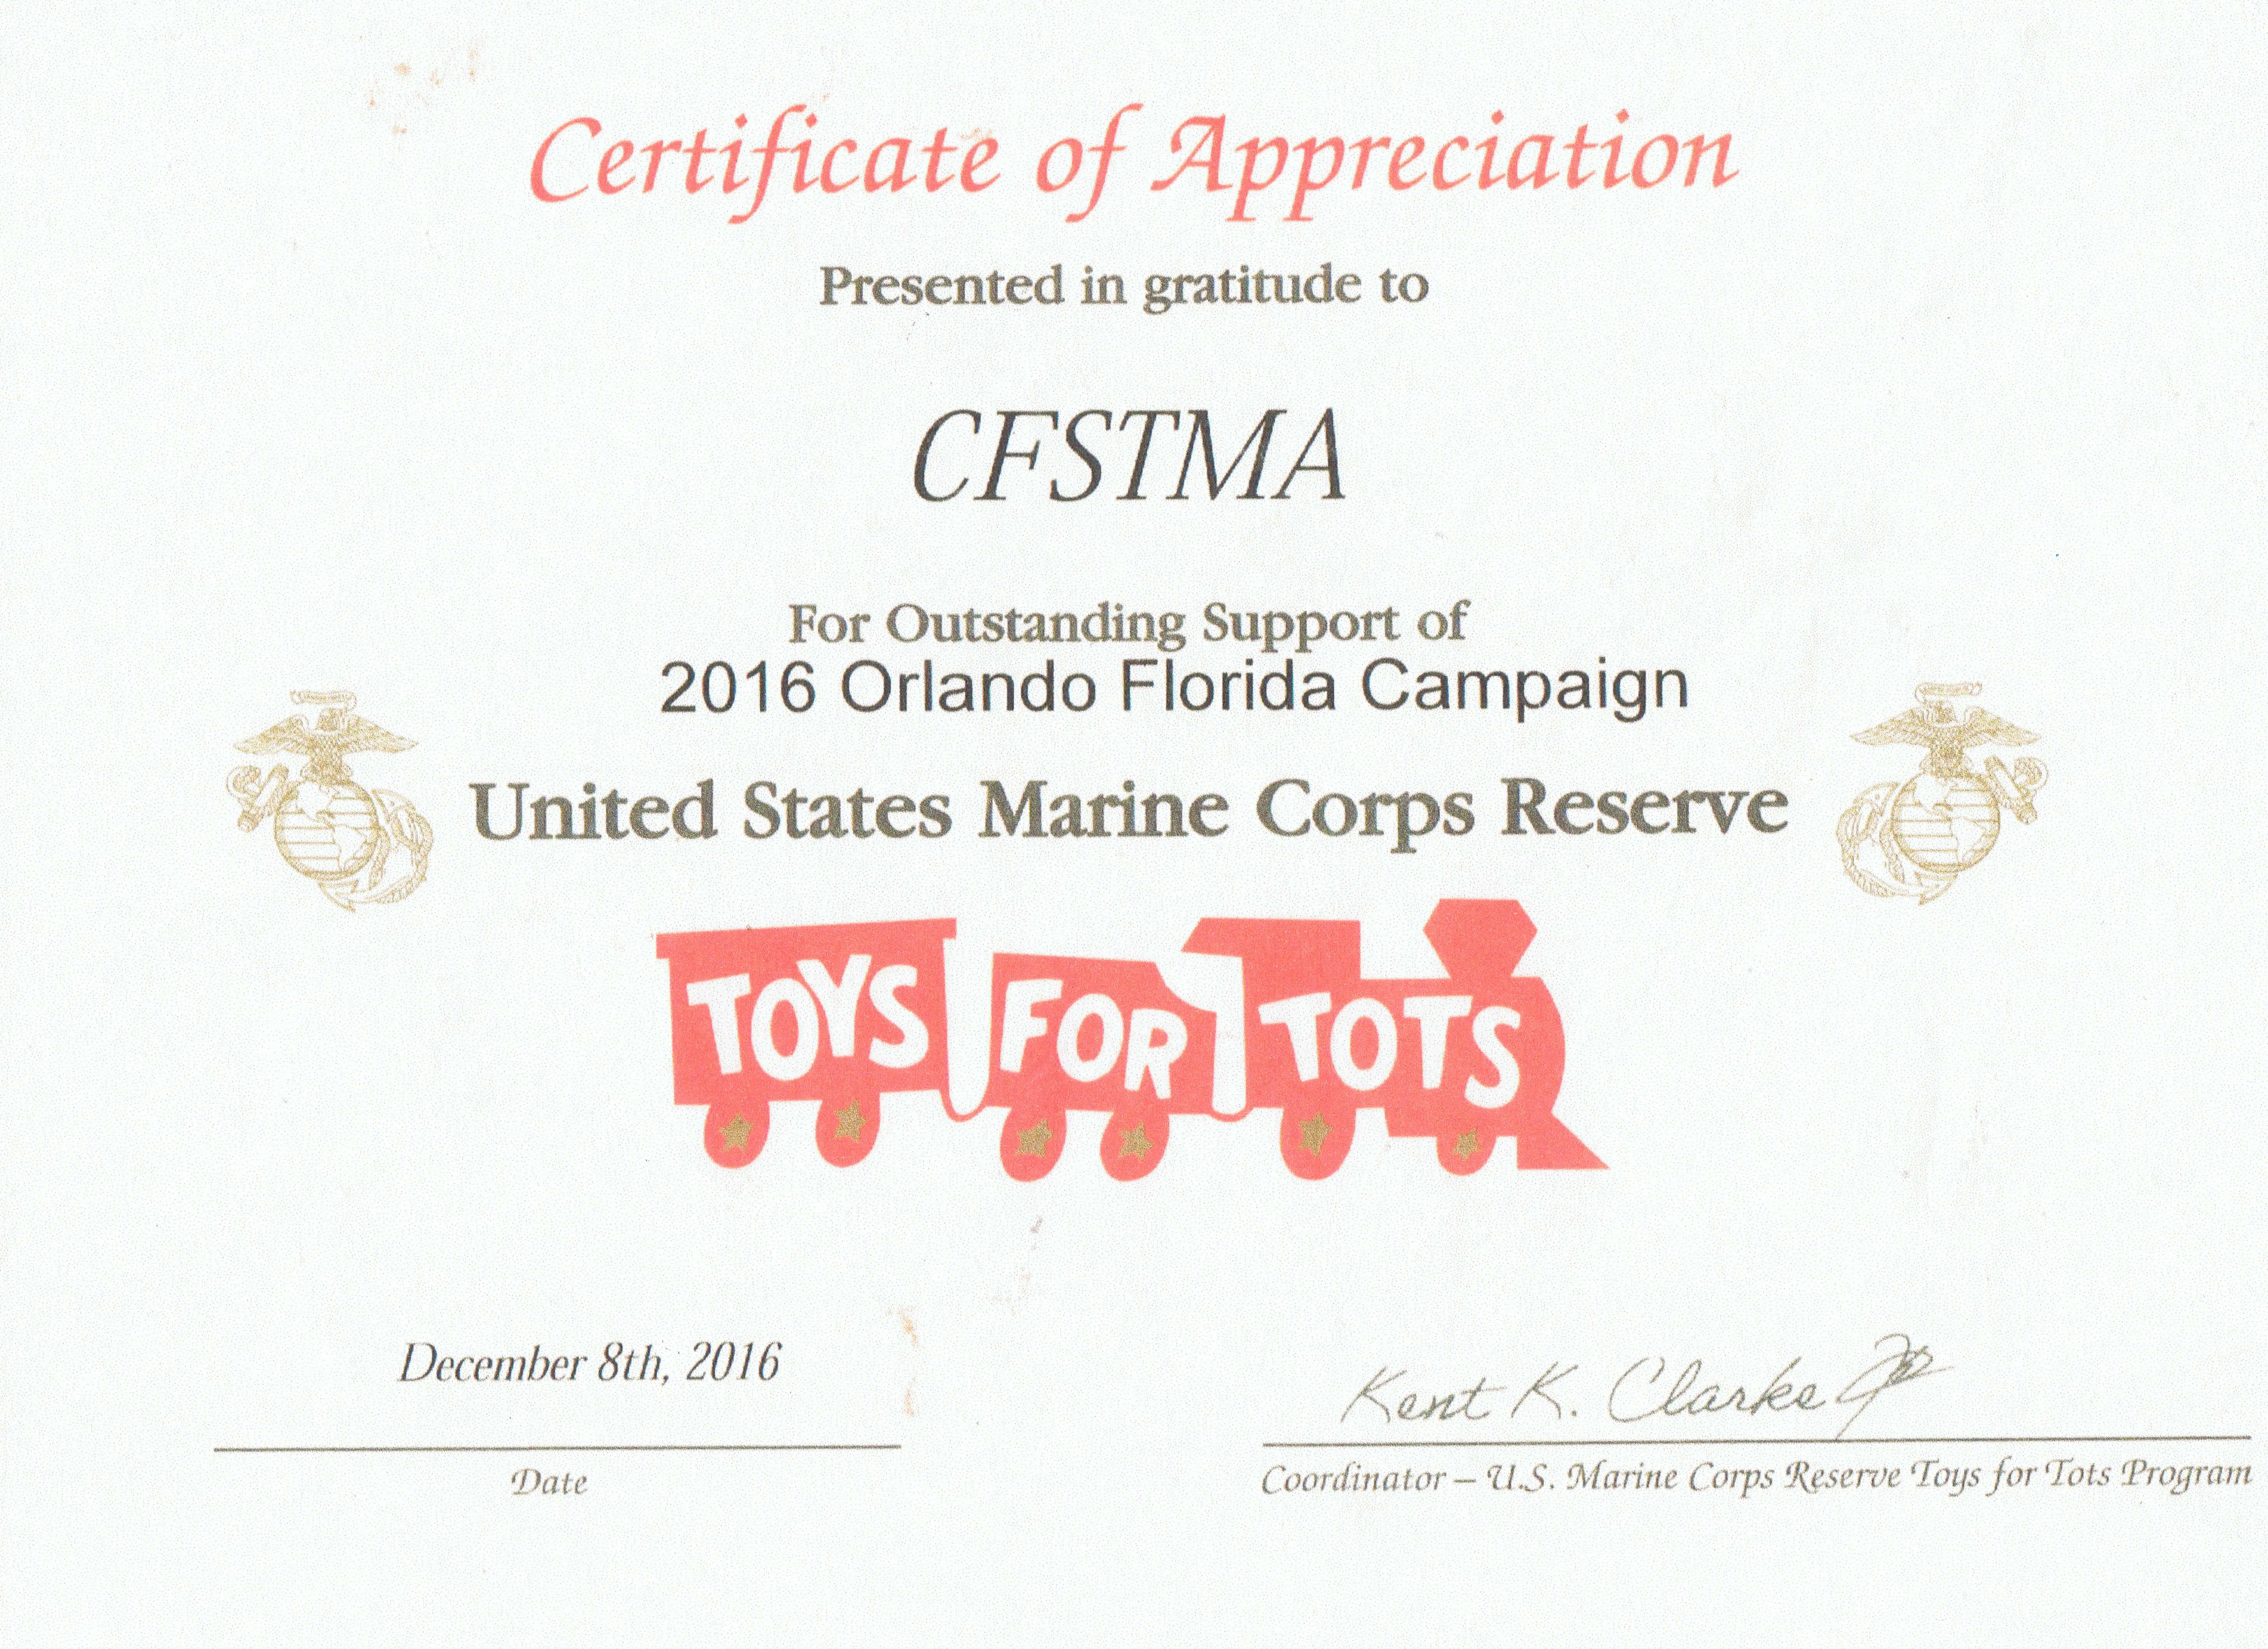 Toys For Tots Certificate : Cfstma partners with unites states marine corps toys for